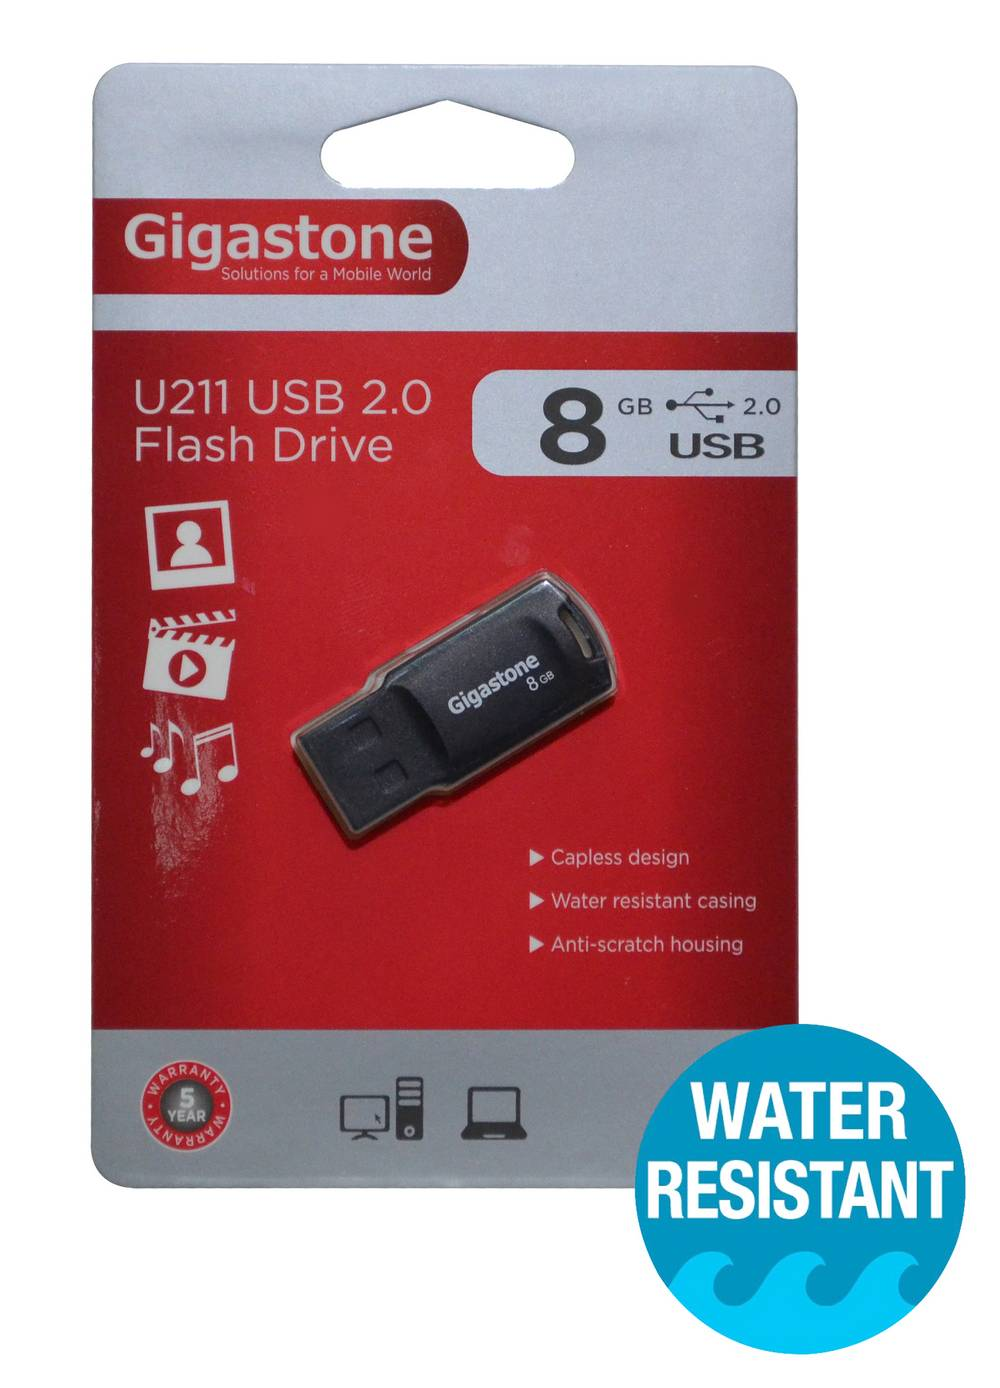 USB 2.0 Gigastone Flash Drive U211 Traveler 8GB Μαύρο